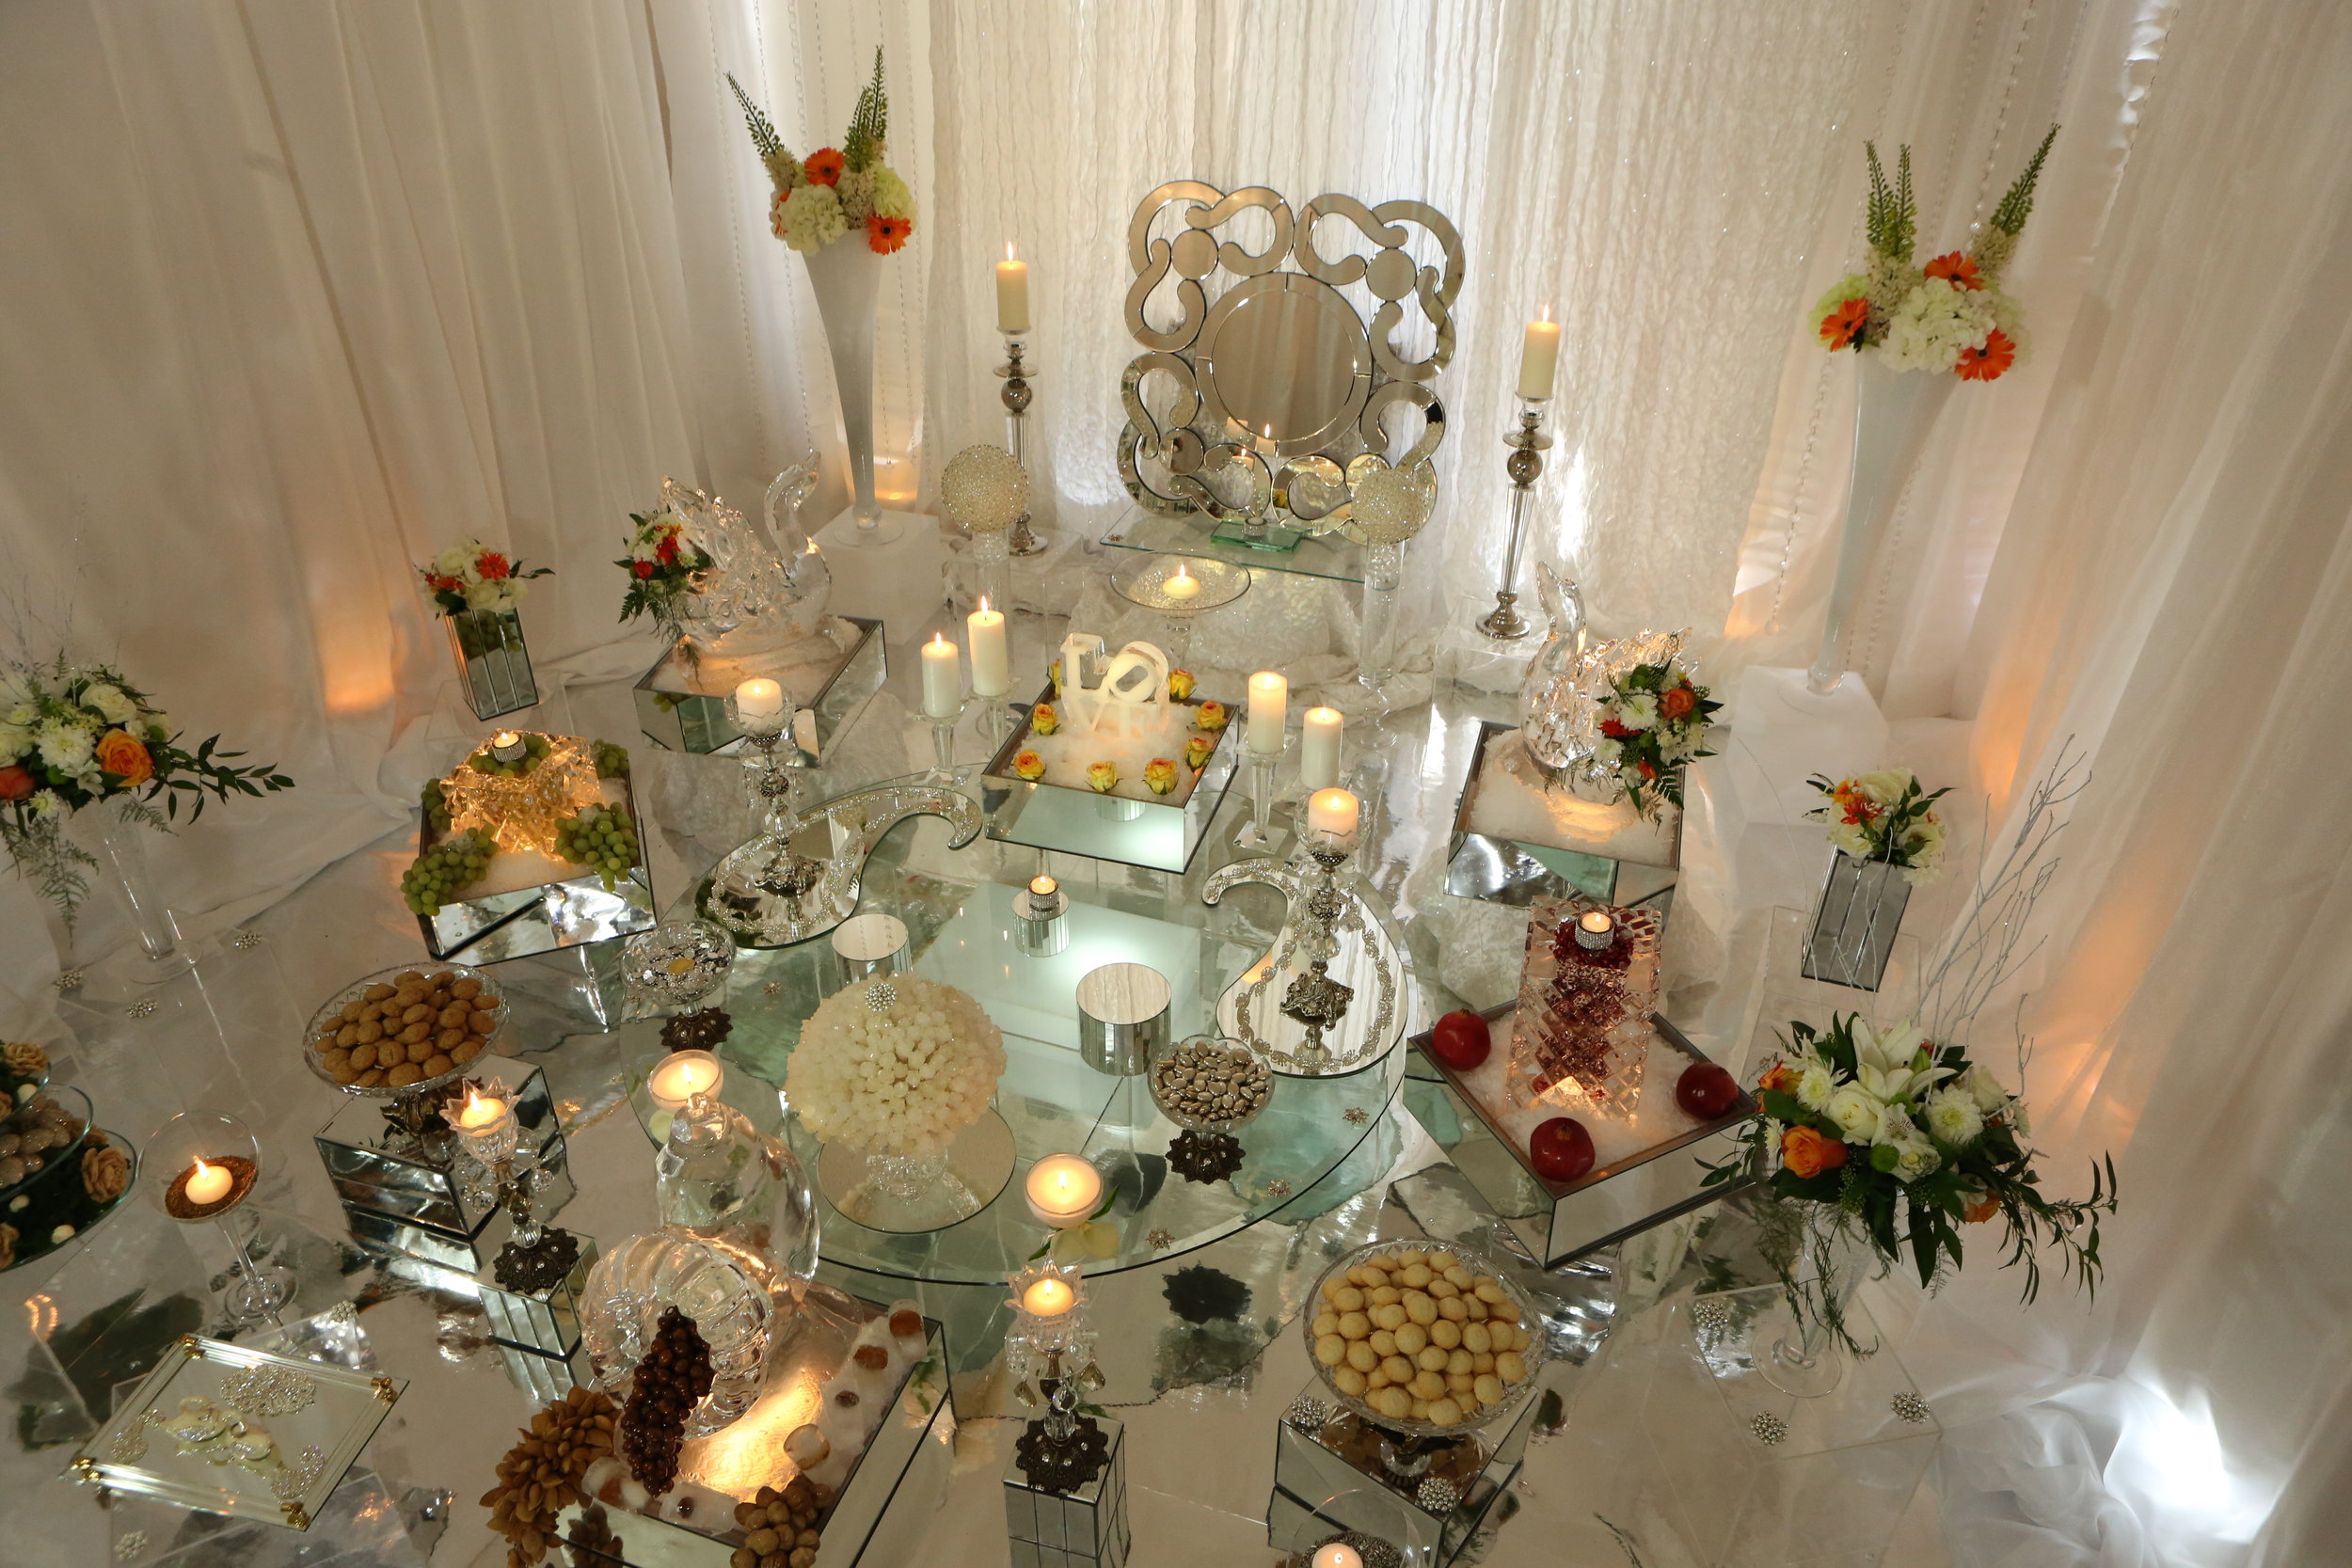 Ice Sculpture Sofreh set up in a private residence-Toronto